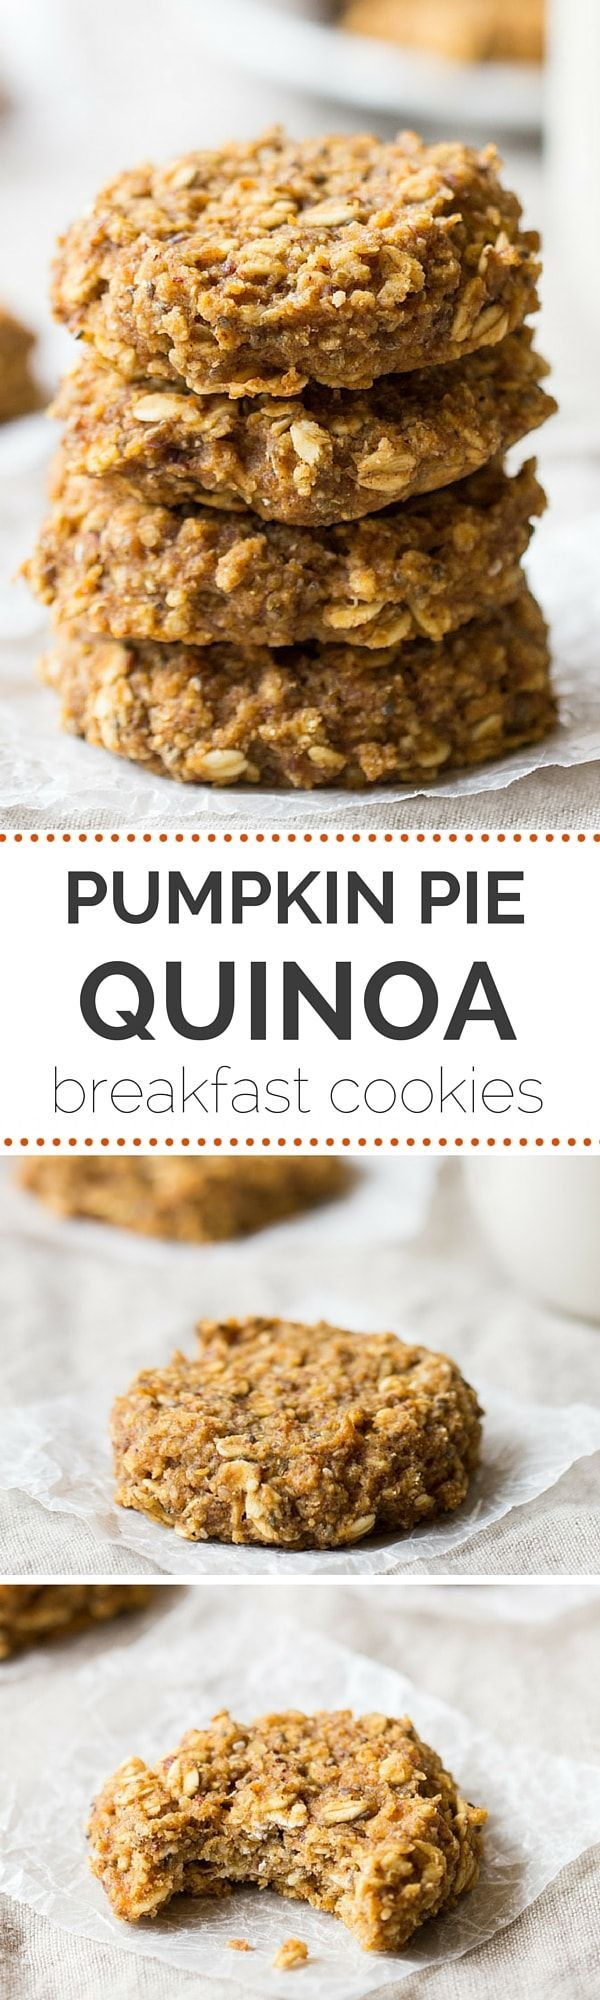 These healthy + VEGAN pumpkin pie quinoa breakfast cookies make for a simple, portable breakfast treat everyone will adore! Made Just Right. Plant Based. Earth Balance.